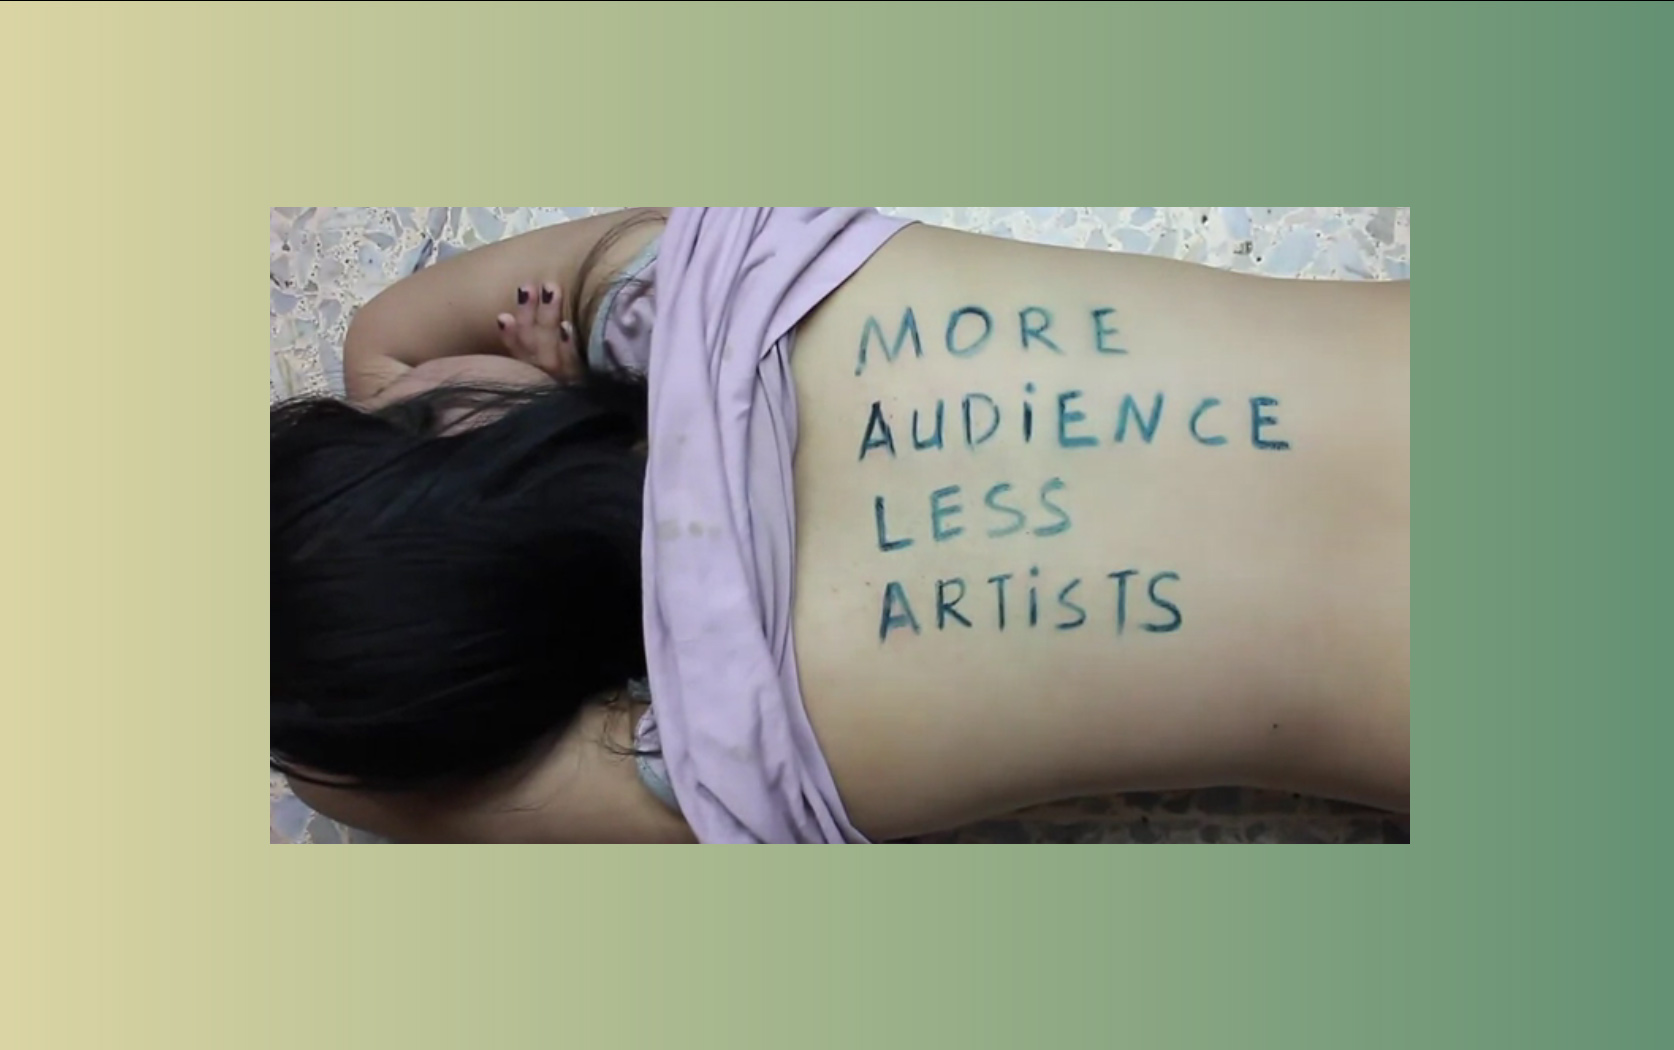 More audience less artists